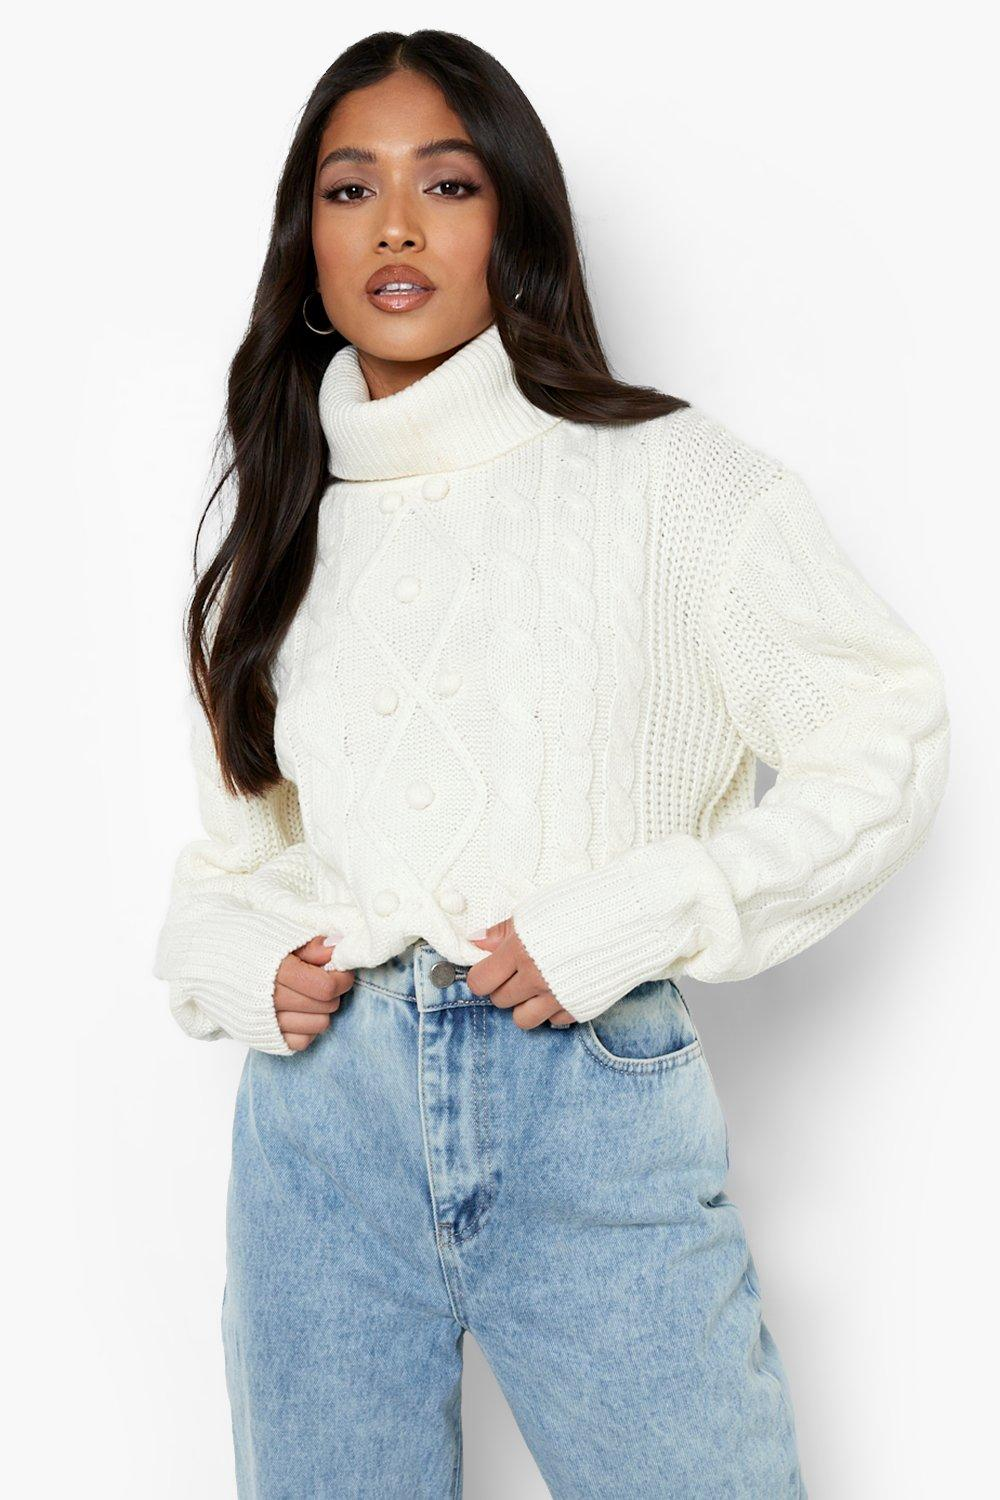 80s Sweatshirts, Sweaters, Vests | Women Womens Petite Cable Pom Pom Roll Neck Crop Sweater - White - M $16.00 AT vintagedancer.com